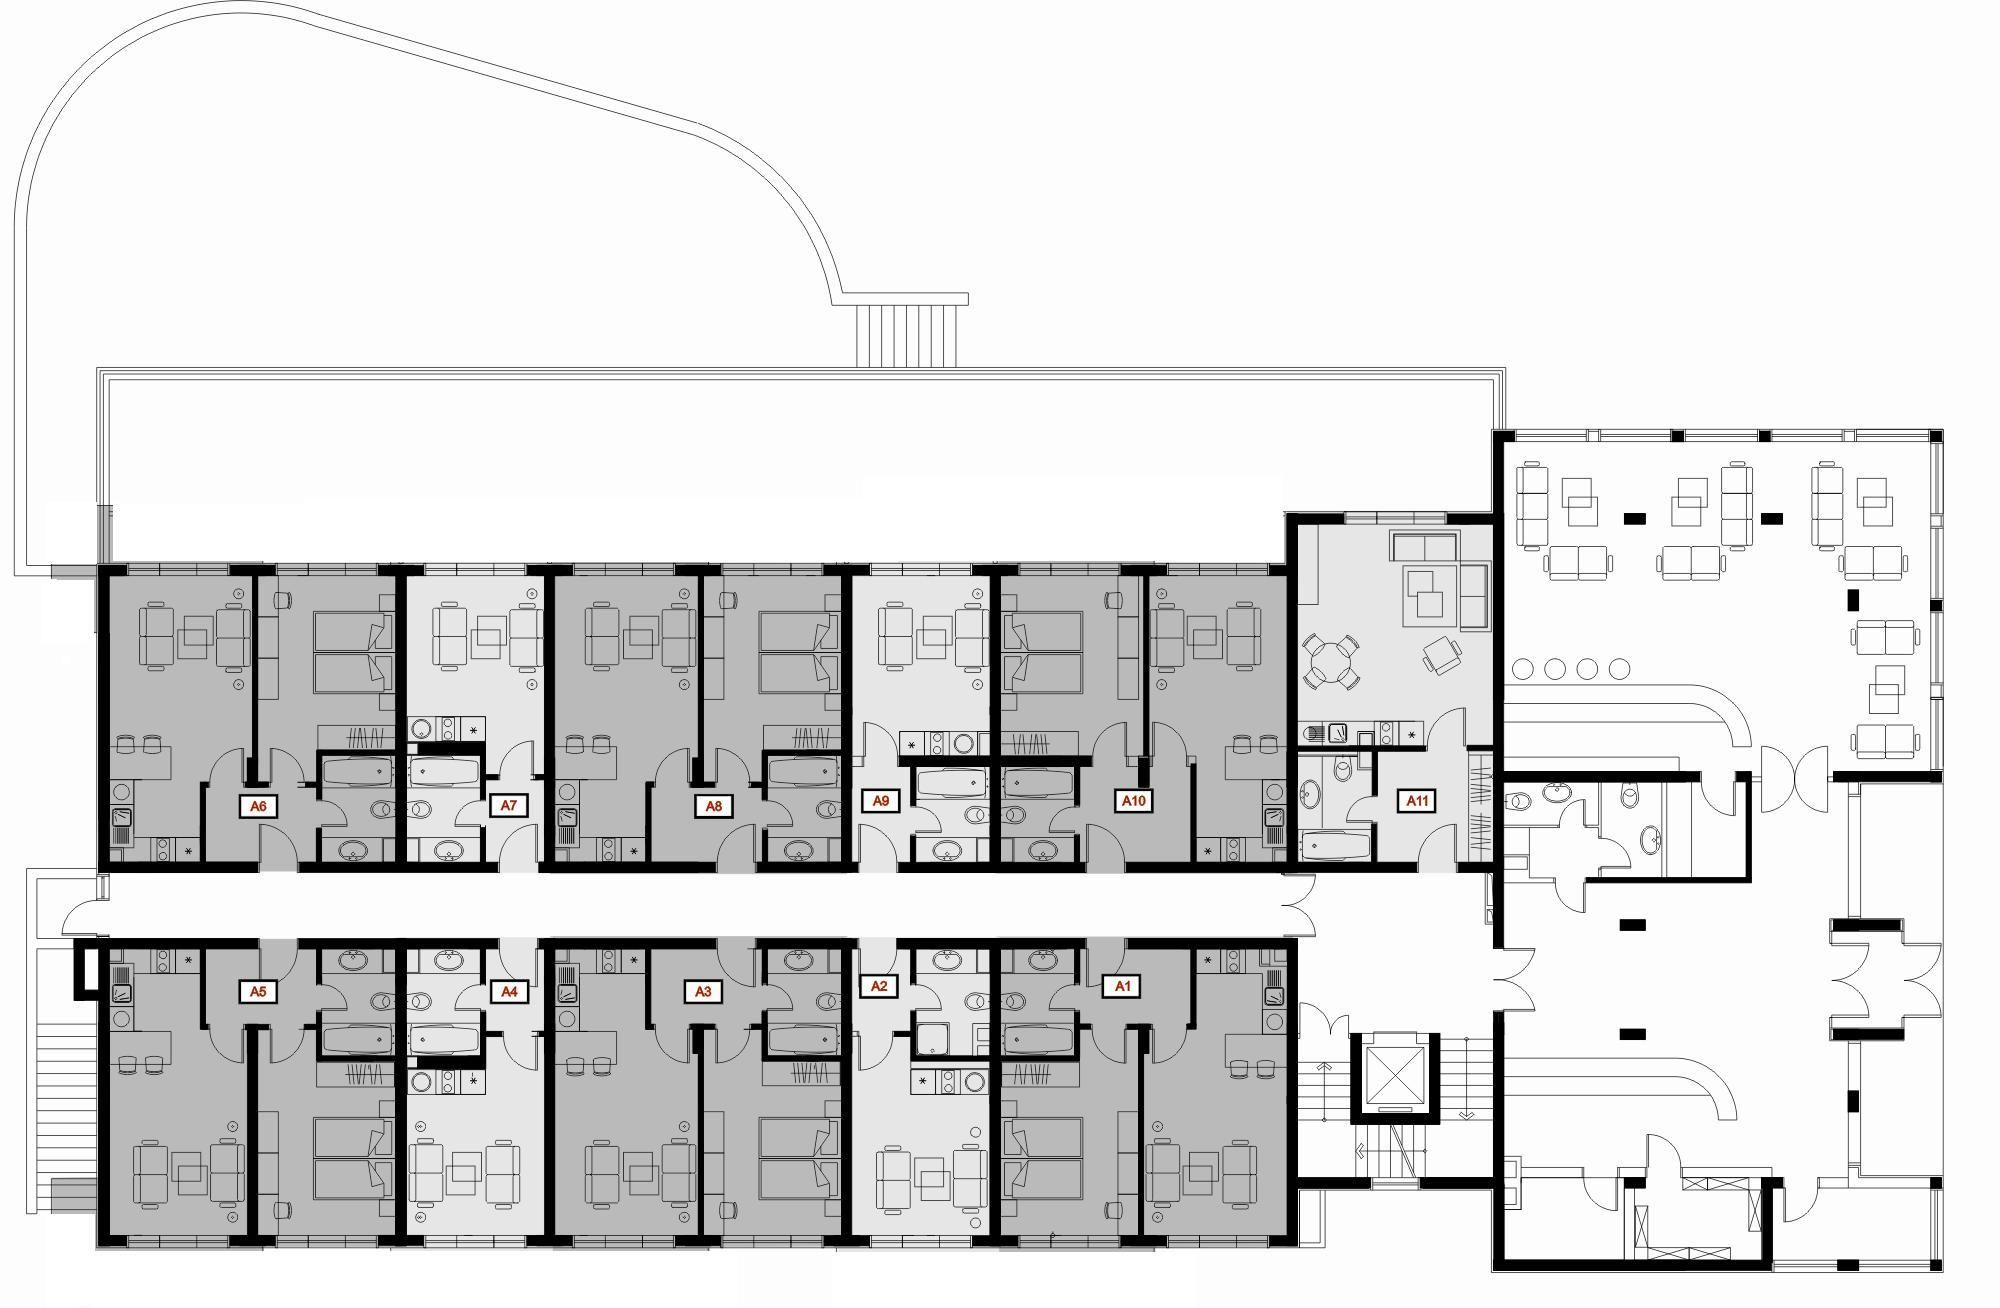 Typical boutique hotel lobby floor plan google 39 da ara butik otel pinterest lobbies Room floor design